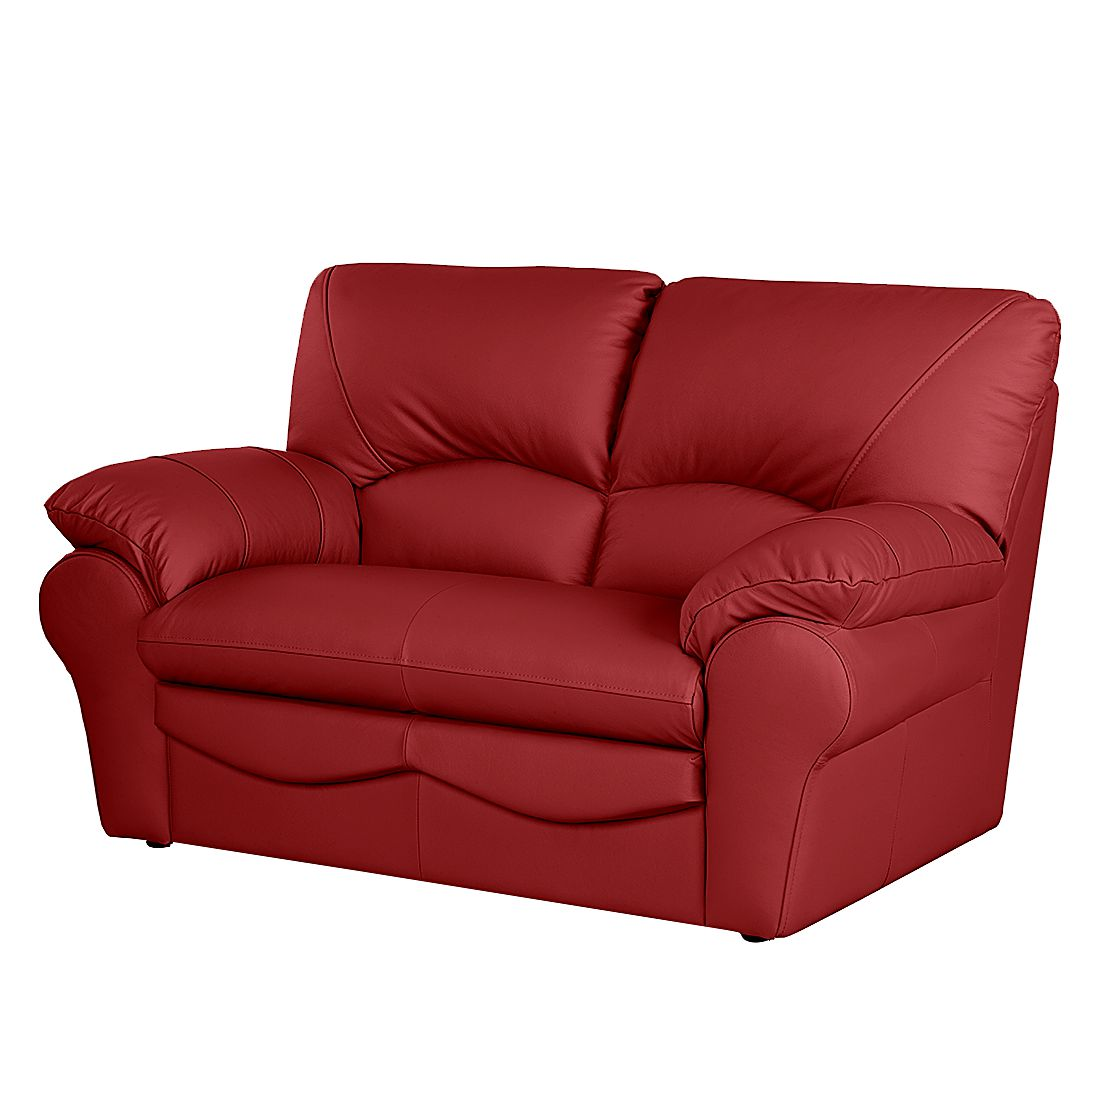 sofa torsby 2 sitzer echtleder rot nuovoform. Black Bedroom Furniture Sets. Home Design Ideas